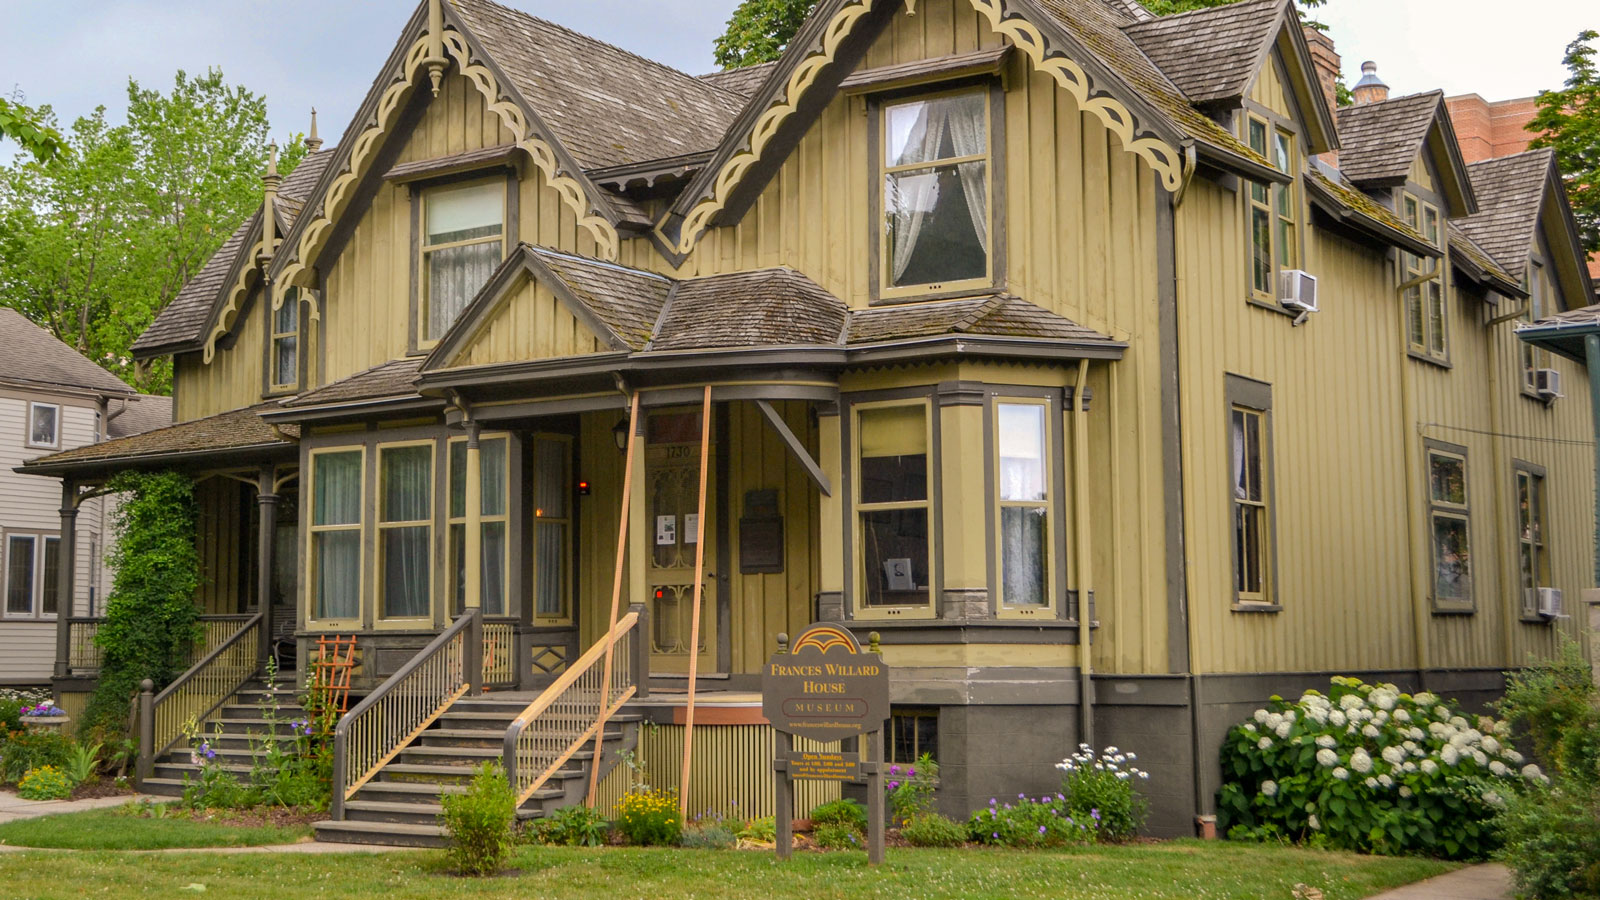 Frances Willard's home, now a museum